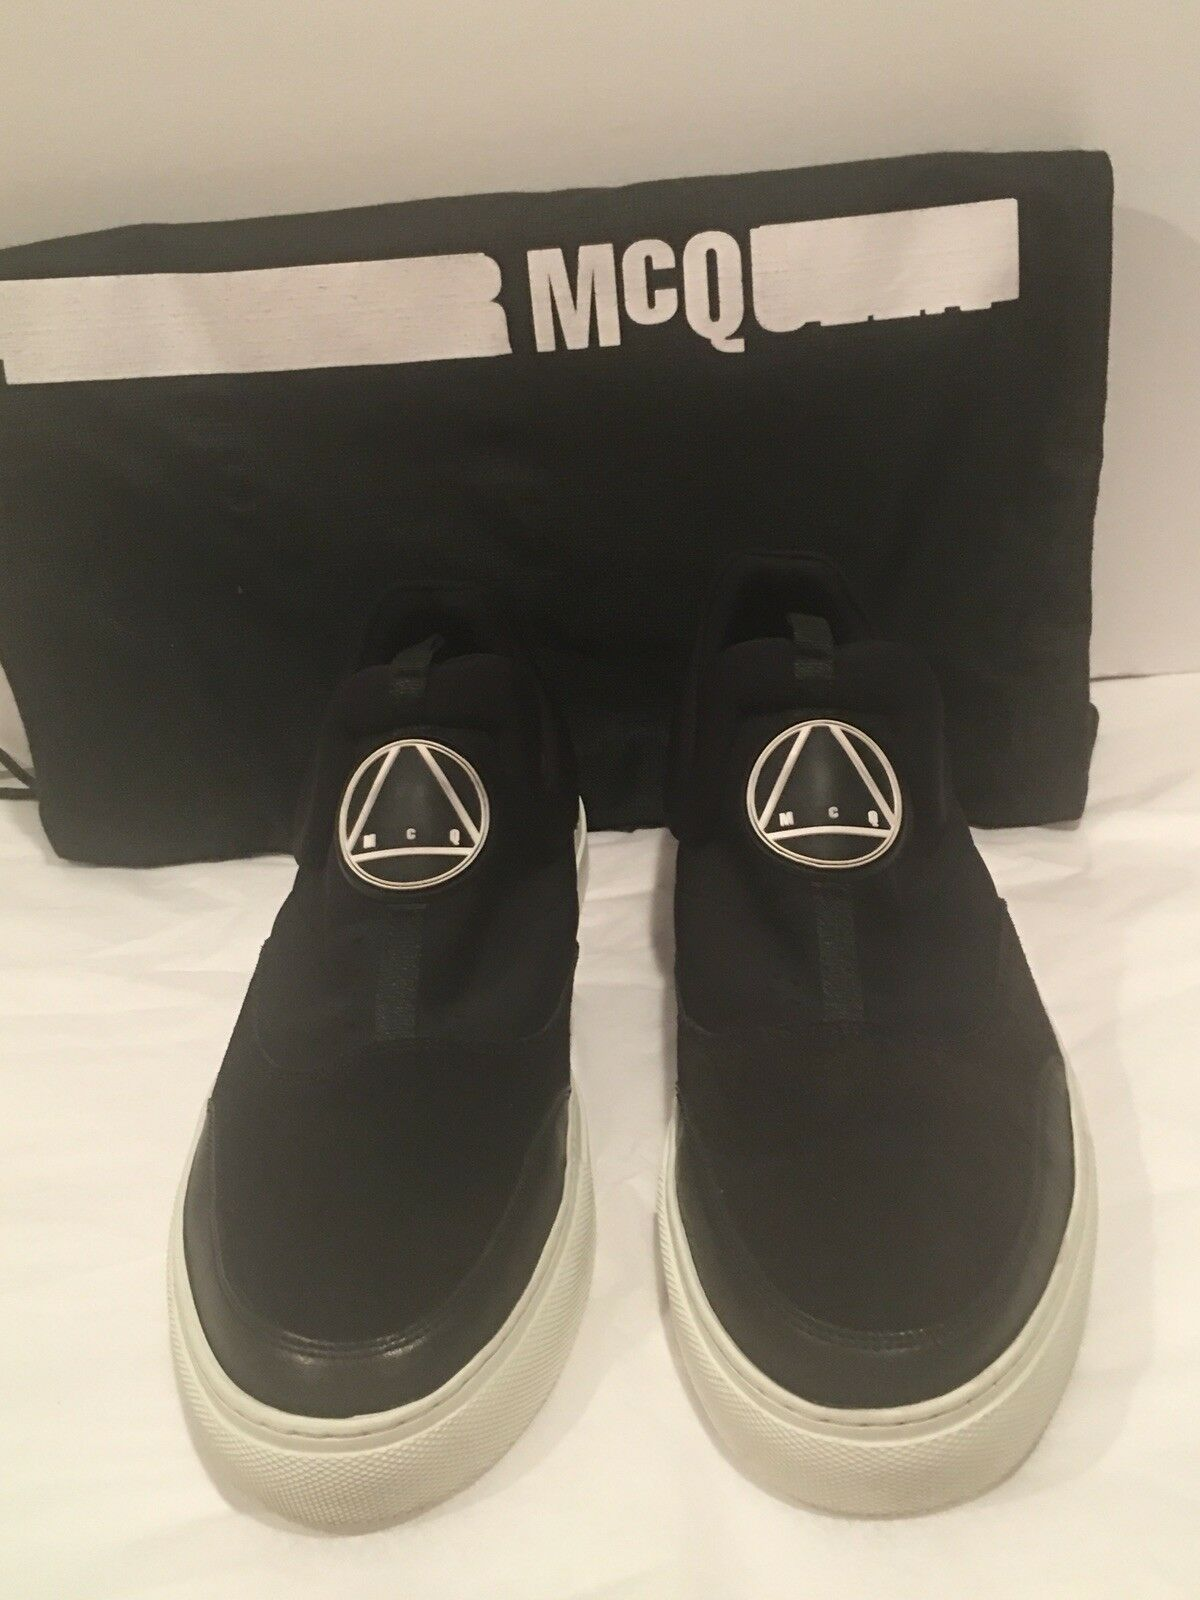 ALEXANDER McQUEEN McQ Men's slip-on leather nylon sneakers size 43EU or 10 US